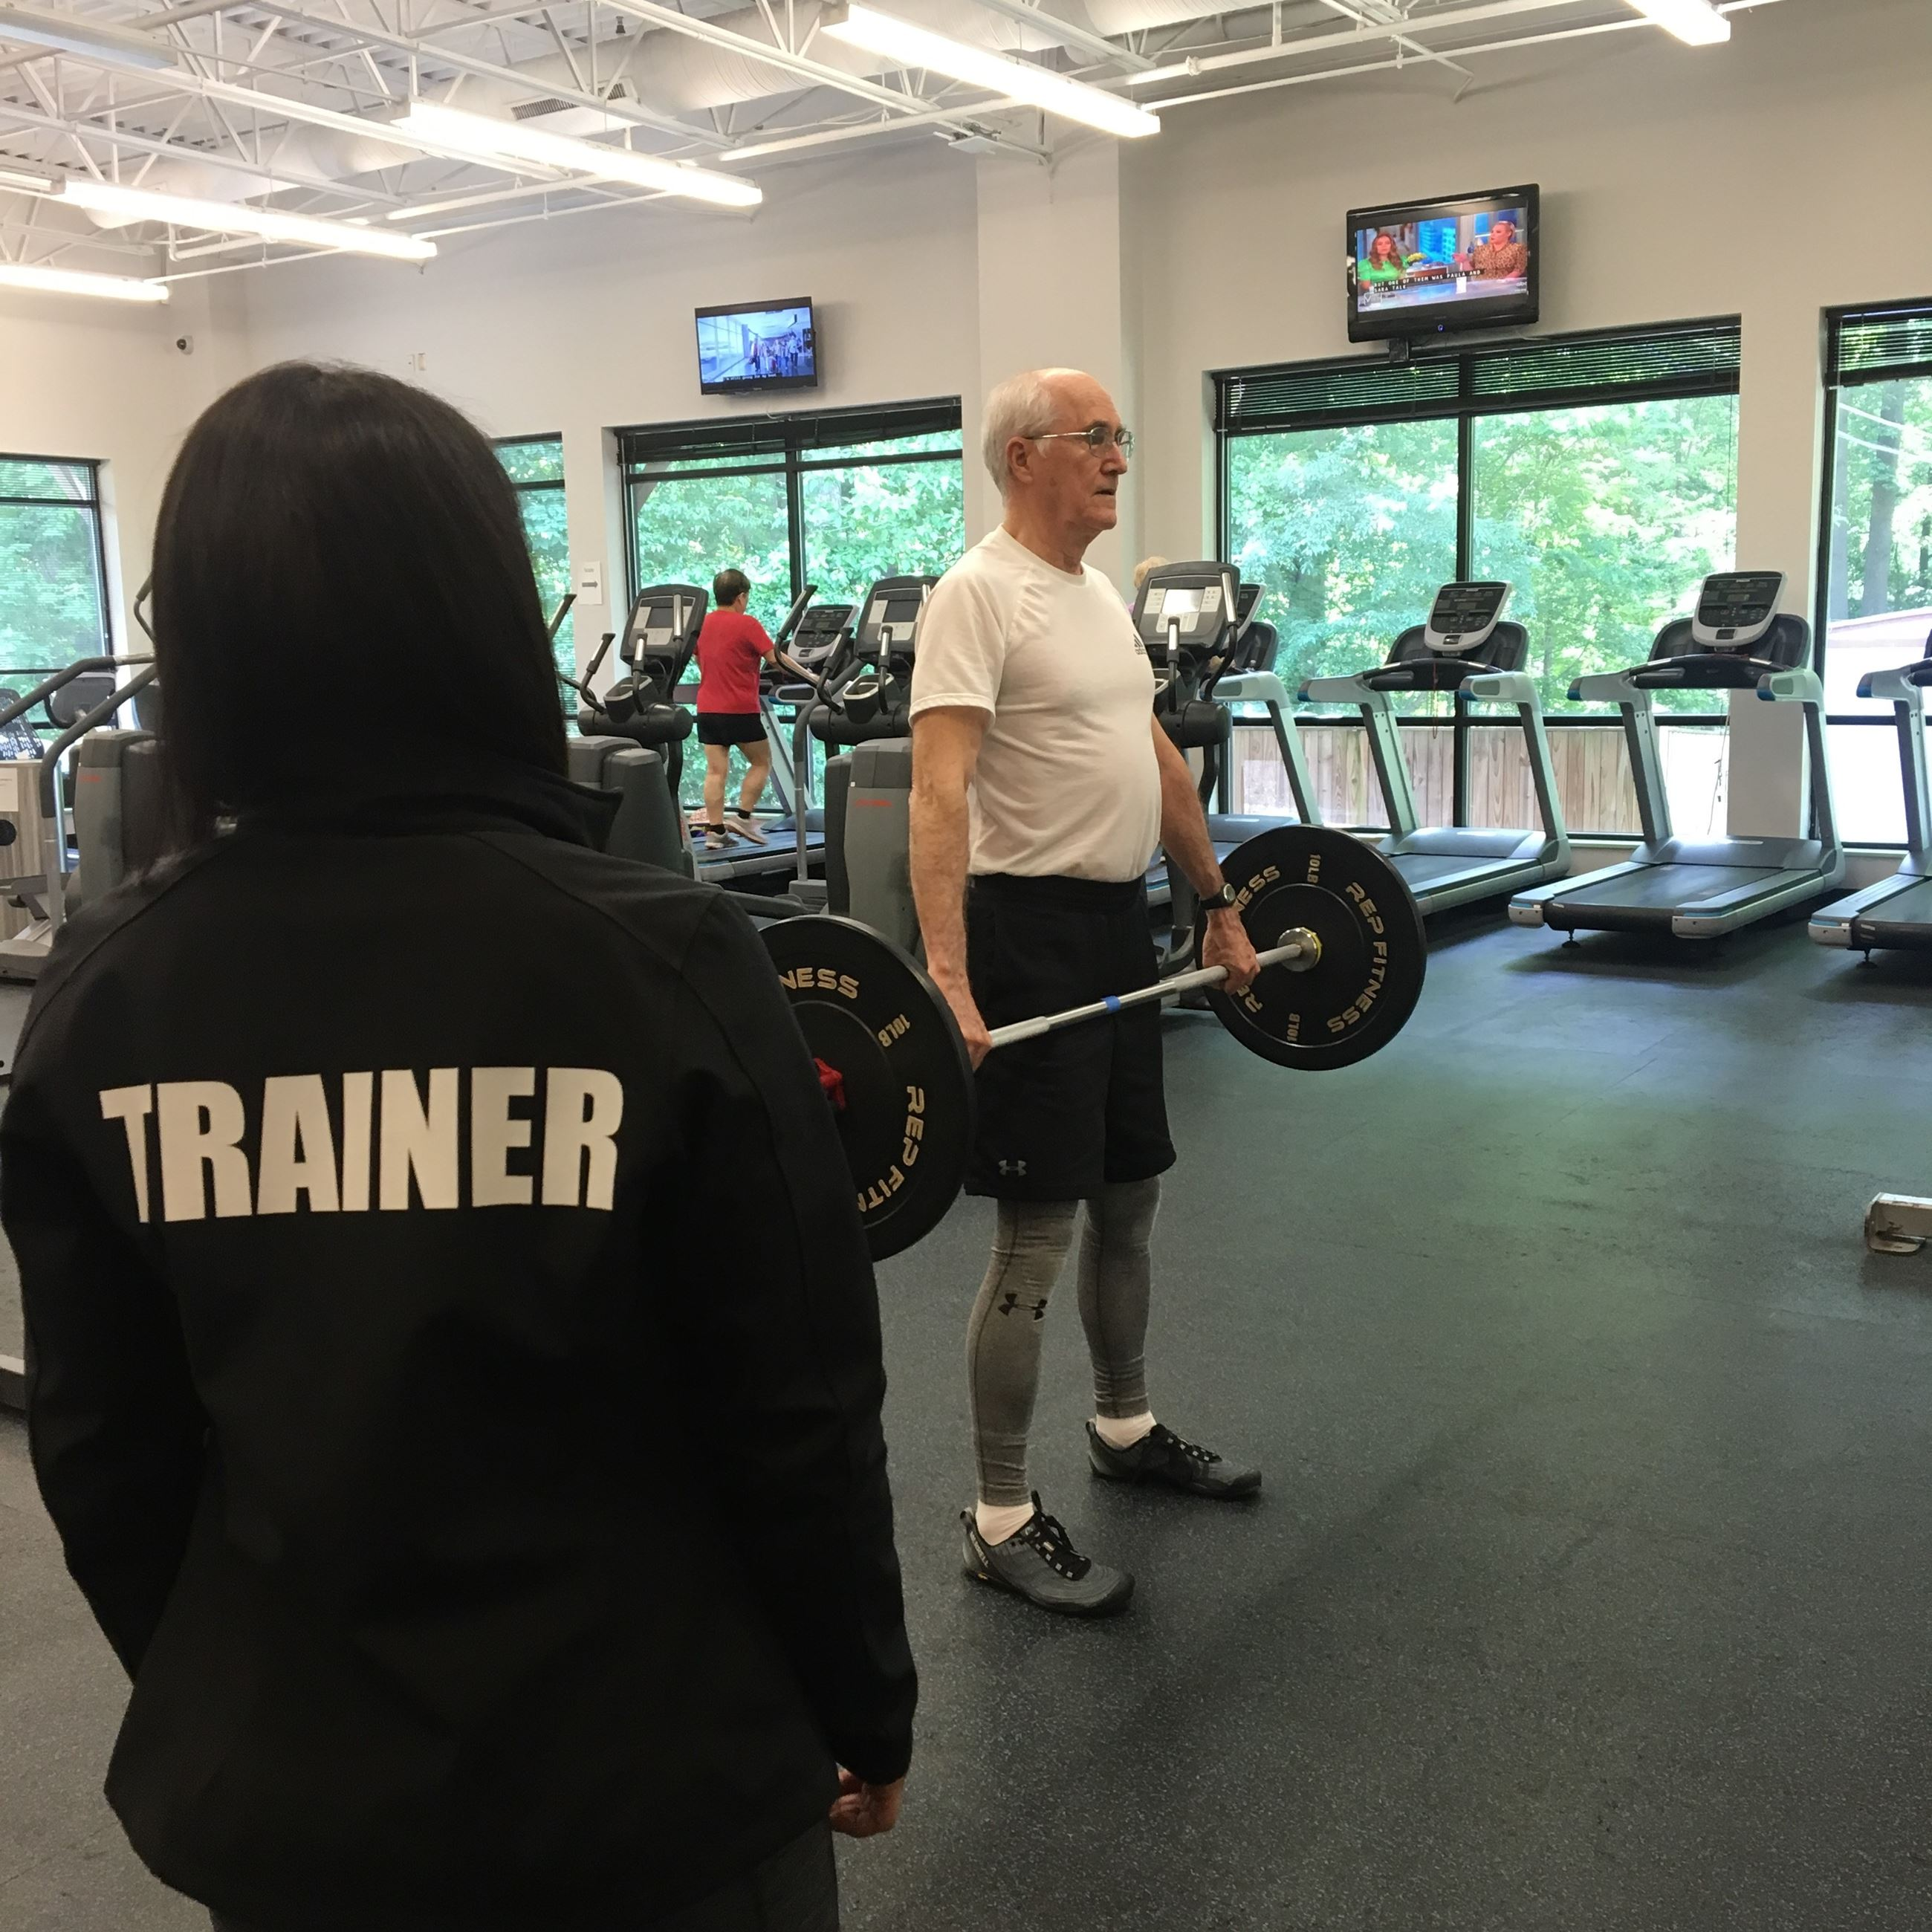 man weightlifting with personal trainer